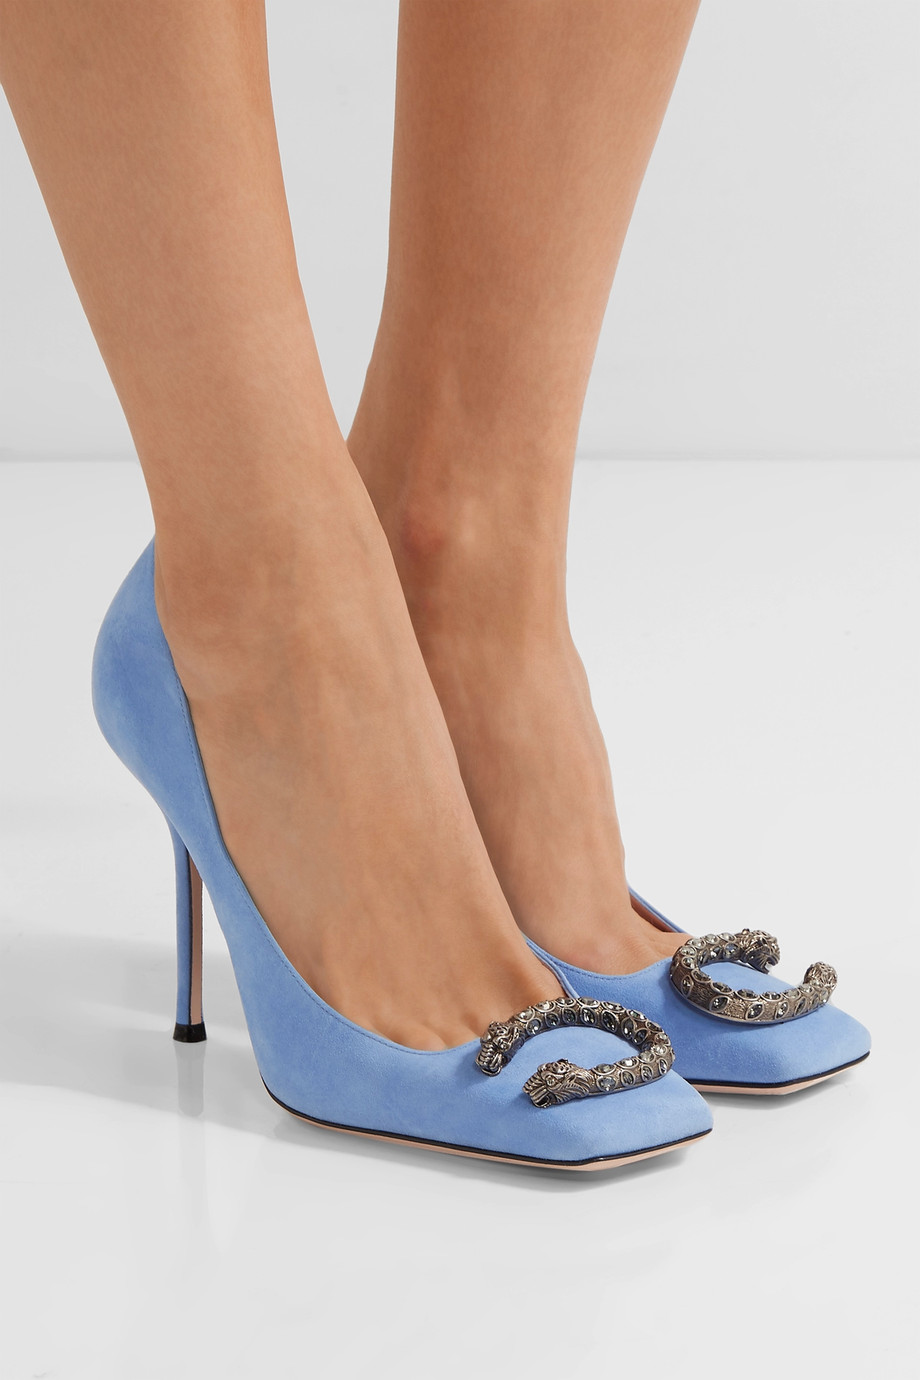 a090f28c47b1 Gucci Blue Suede Shoes - Gucci Dionysus Embellished Suede Pumps - Light blue